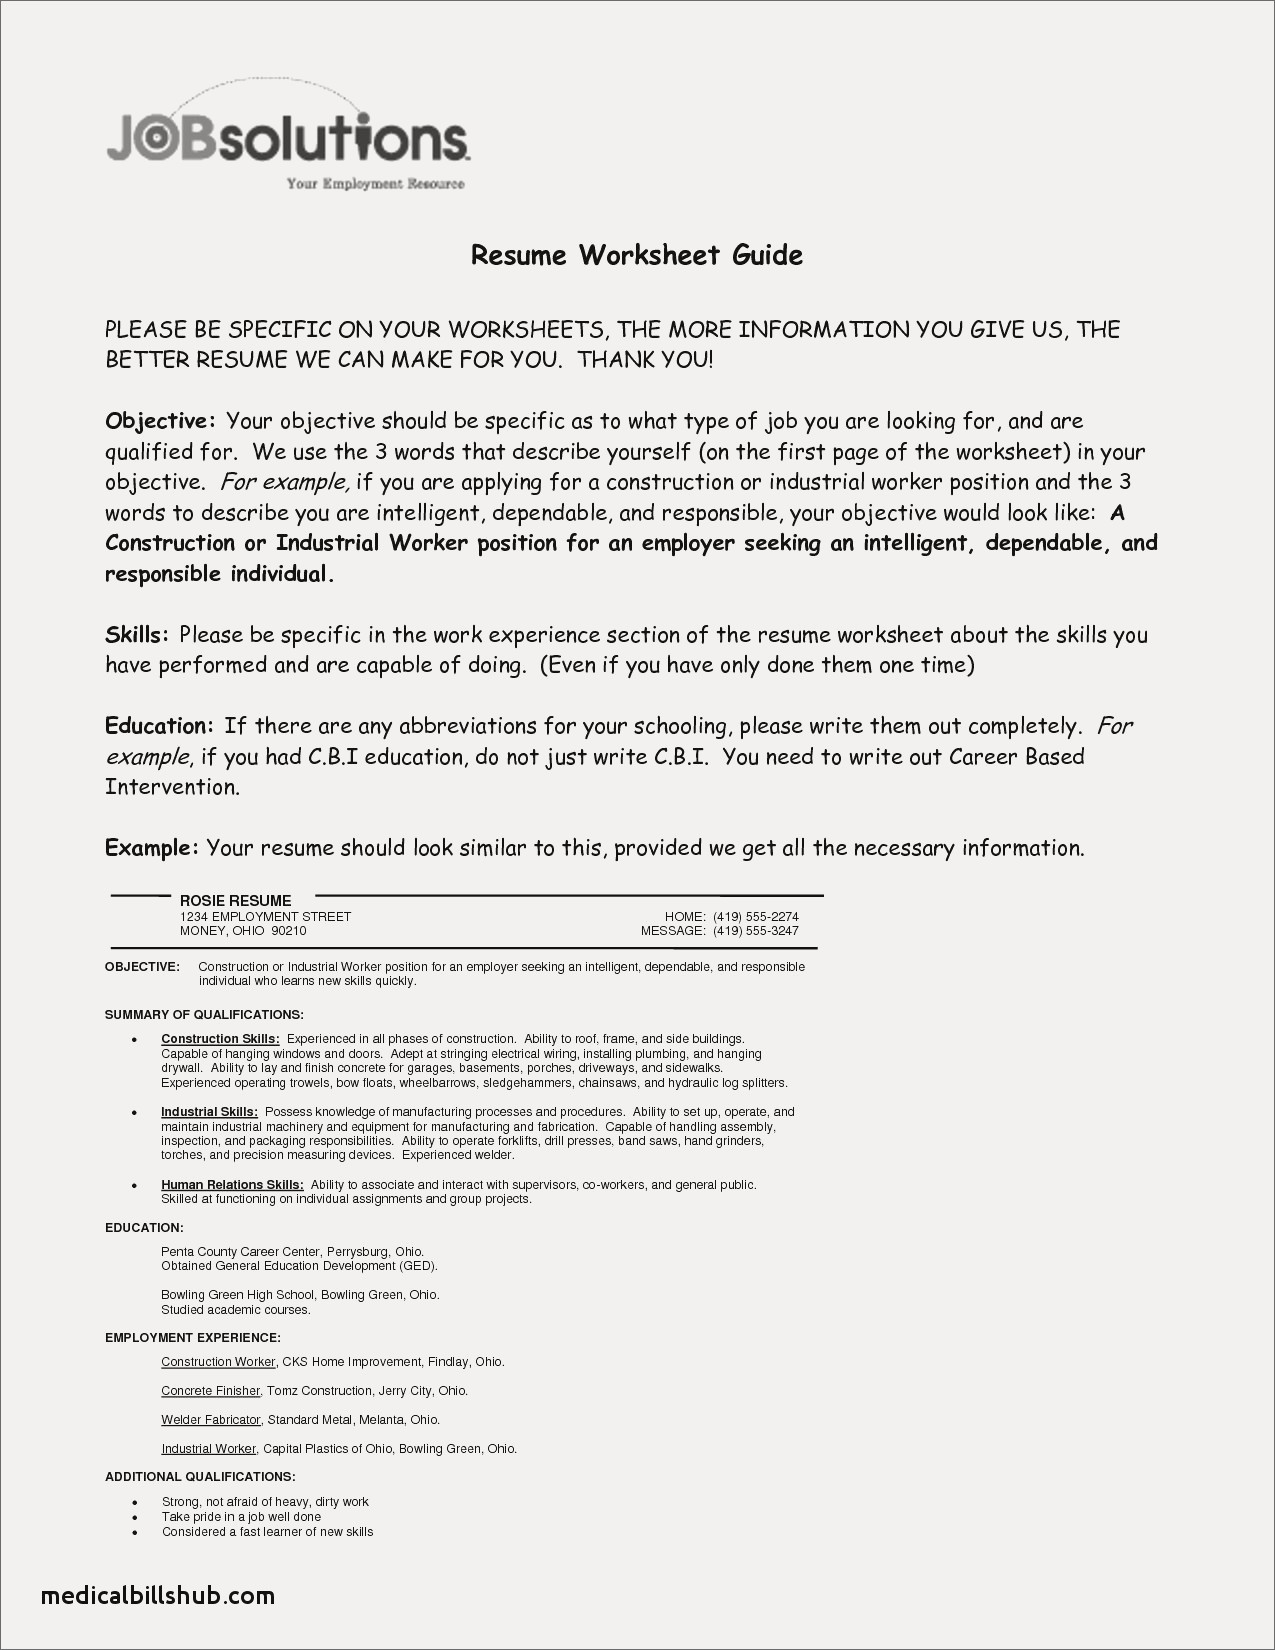 healthcare resume Collection-Objective for Resume Healthcare Example Best Best Sample College Application Resume Lovely Painter Resume 0d 13-a